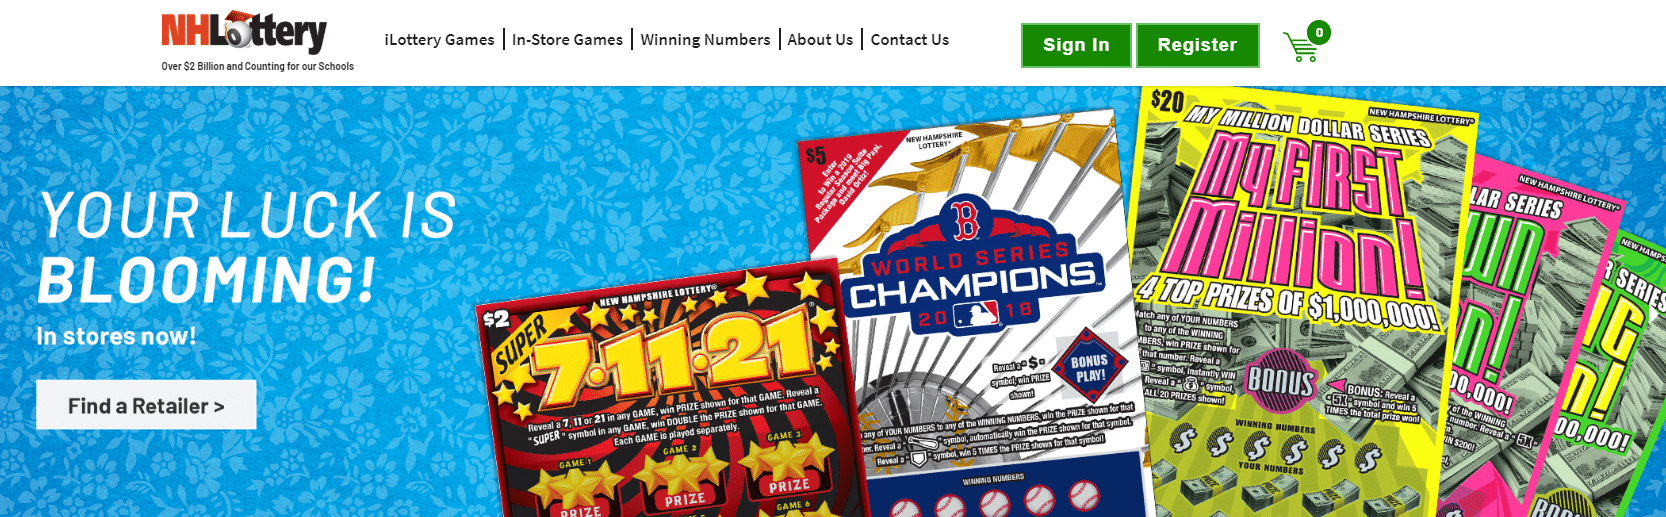 New Hampshire Lottery Promo Code 2019